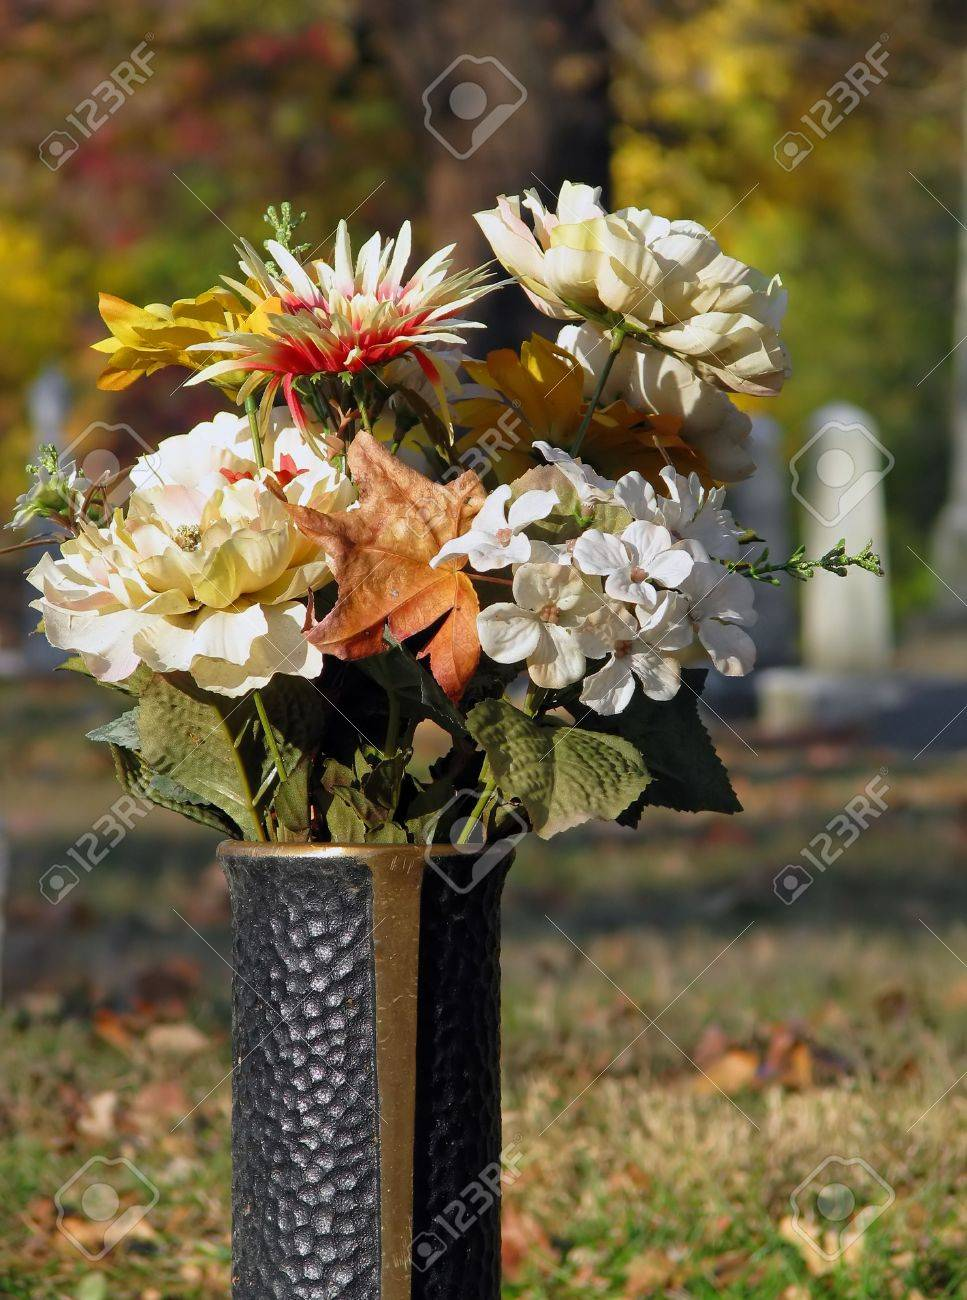 Silk Flowers In Cemetery Grave Vase Autumn Stock Photo Picture And